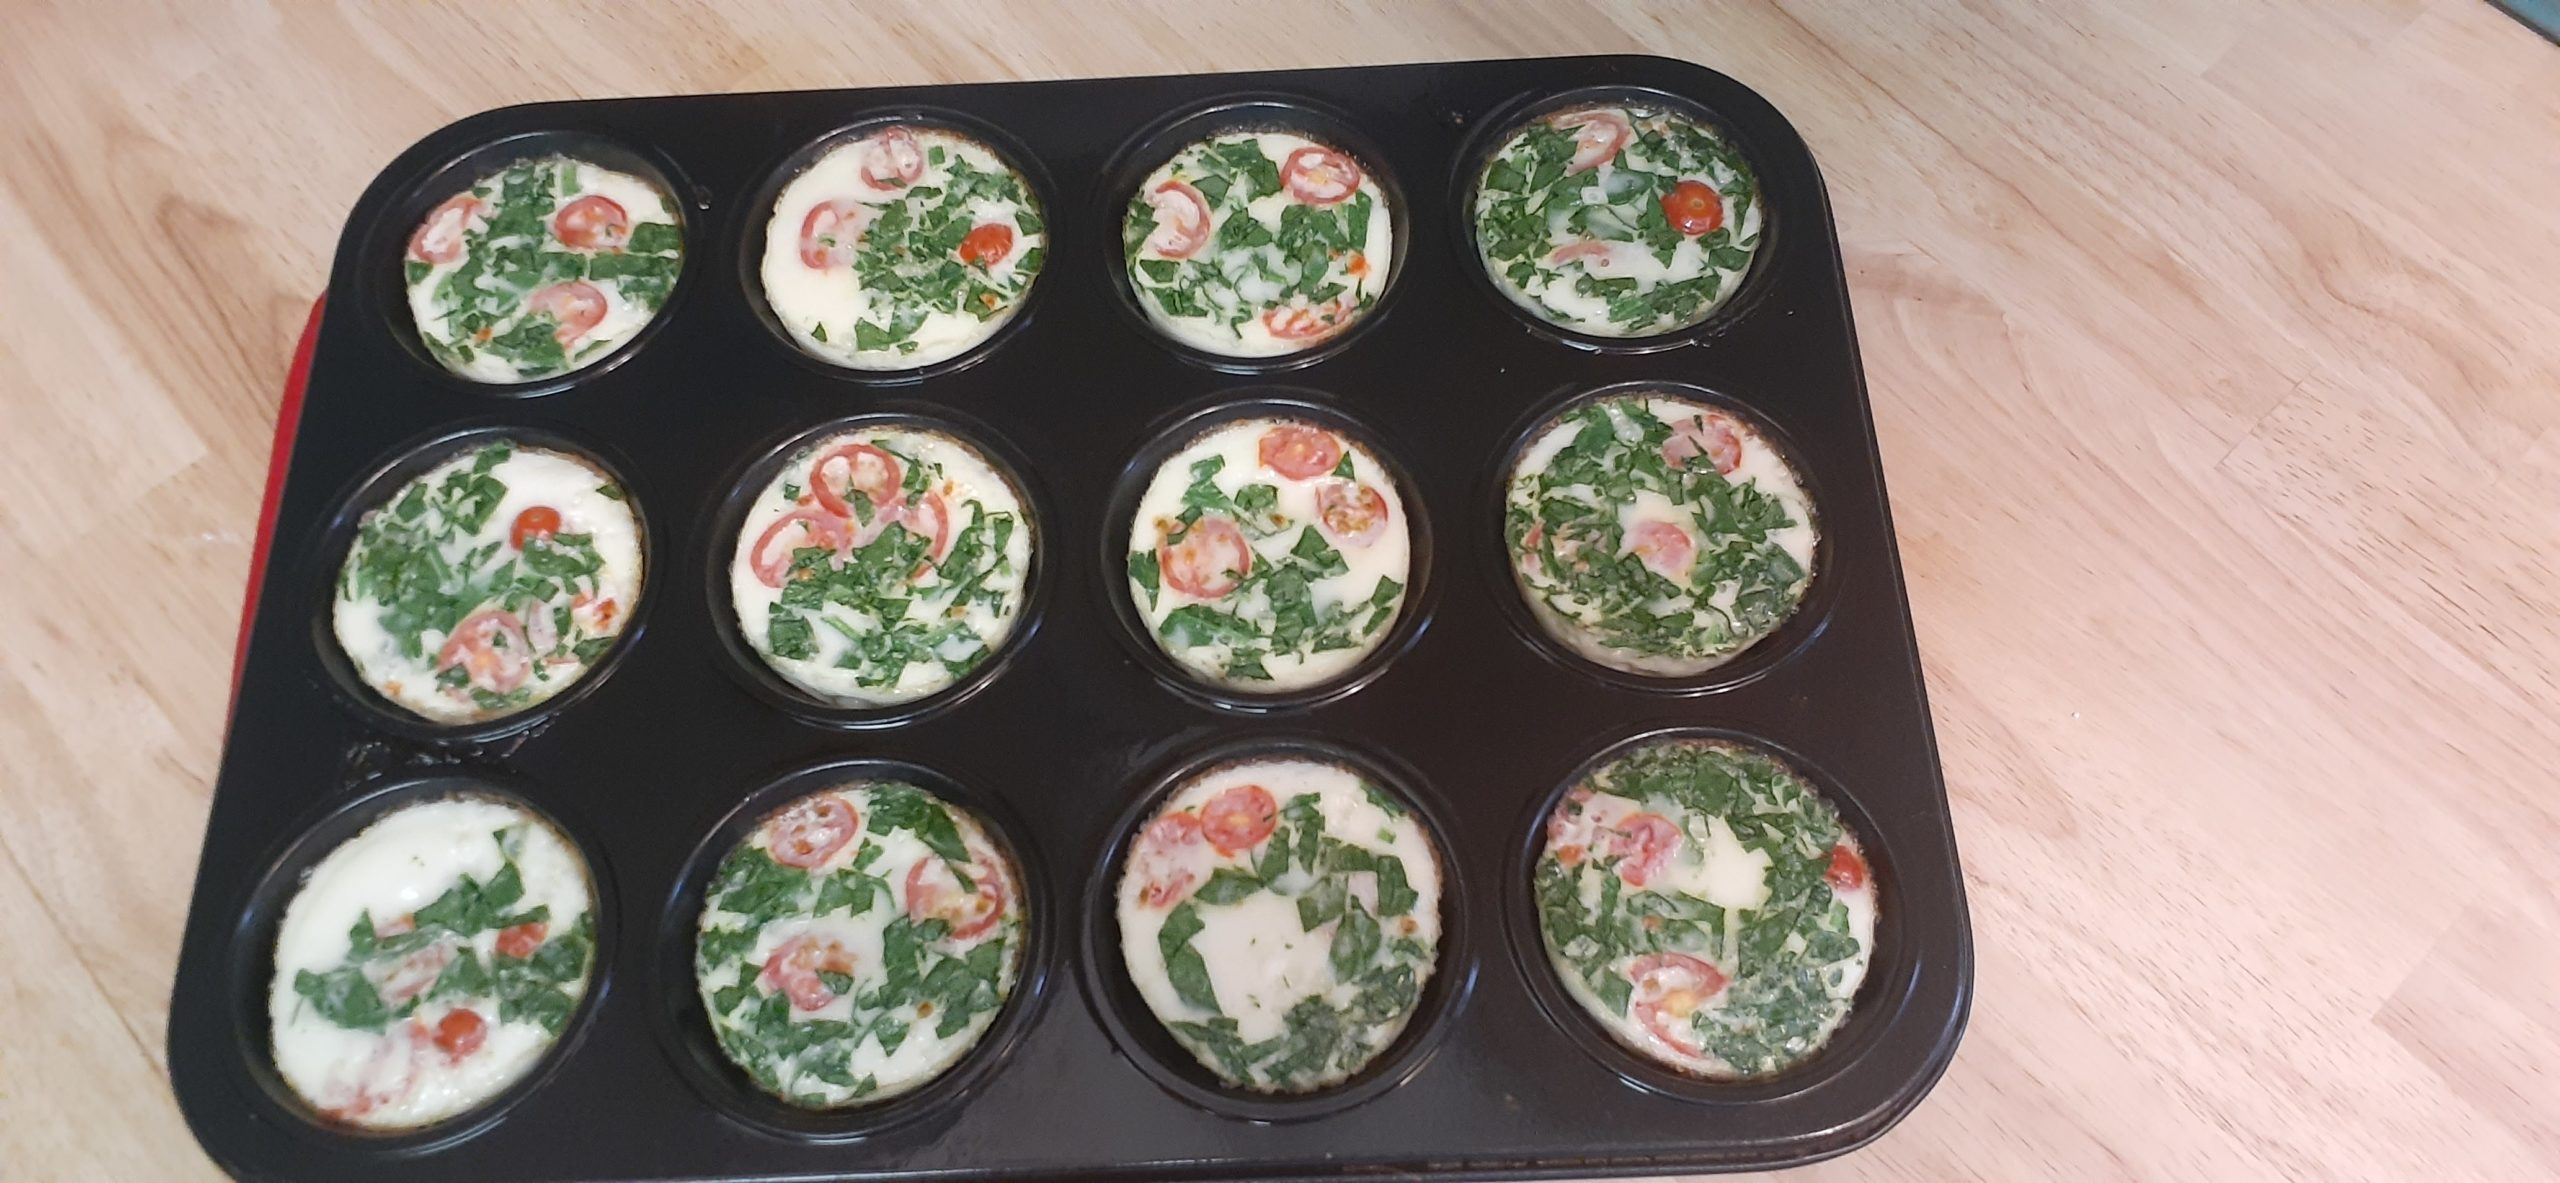 Fully cooked Healthy Egg White Veggie Muffins